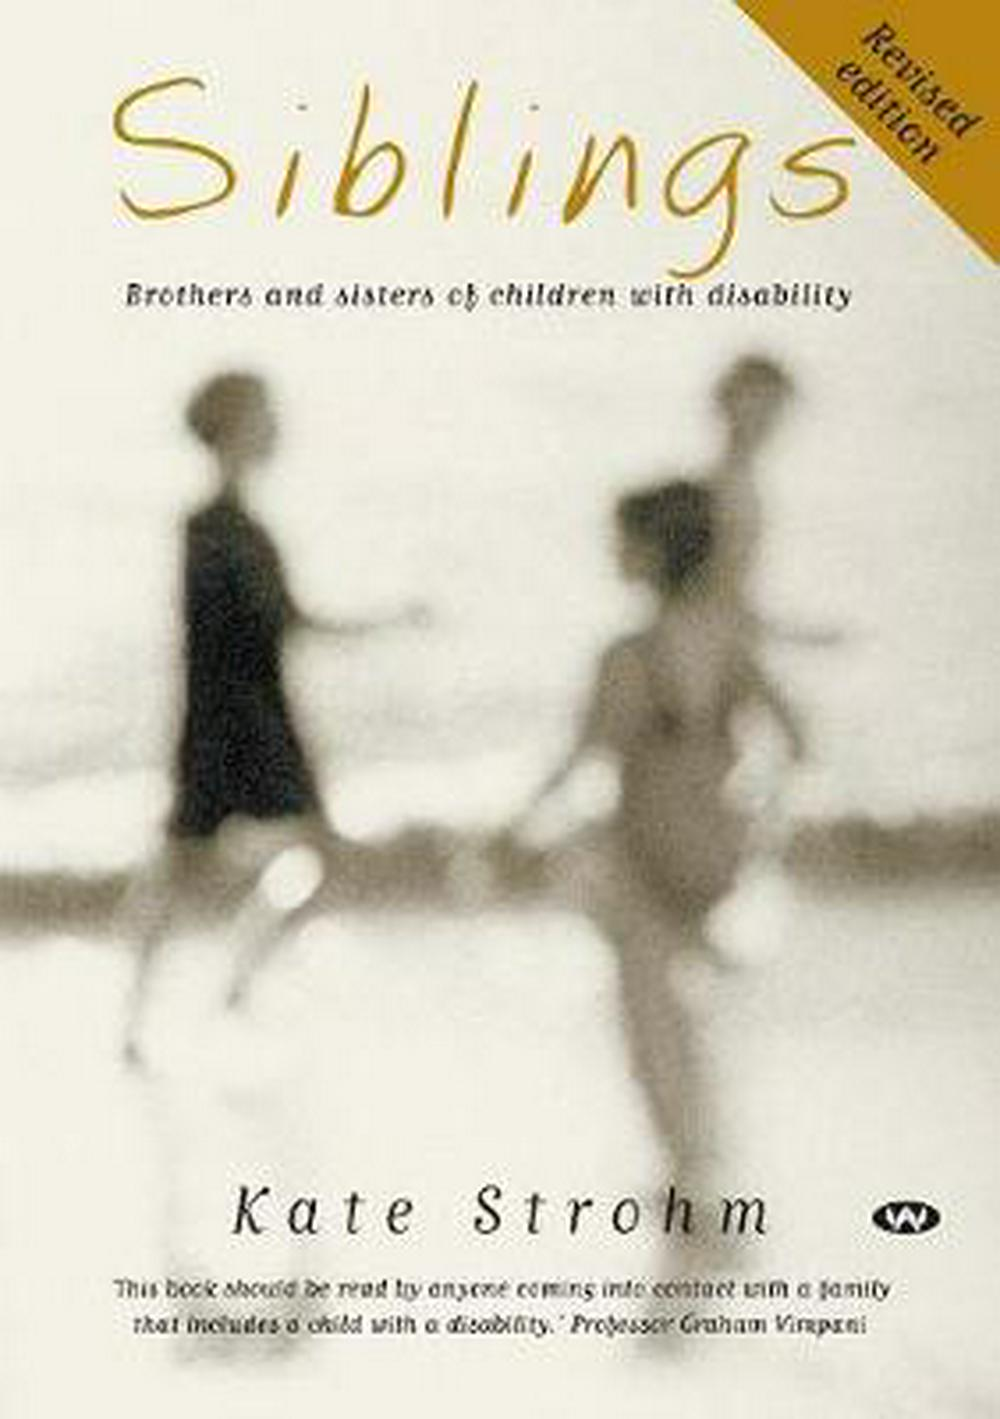 Siblings: Brothers and sisters of children with disability